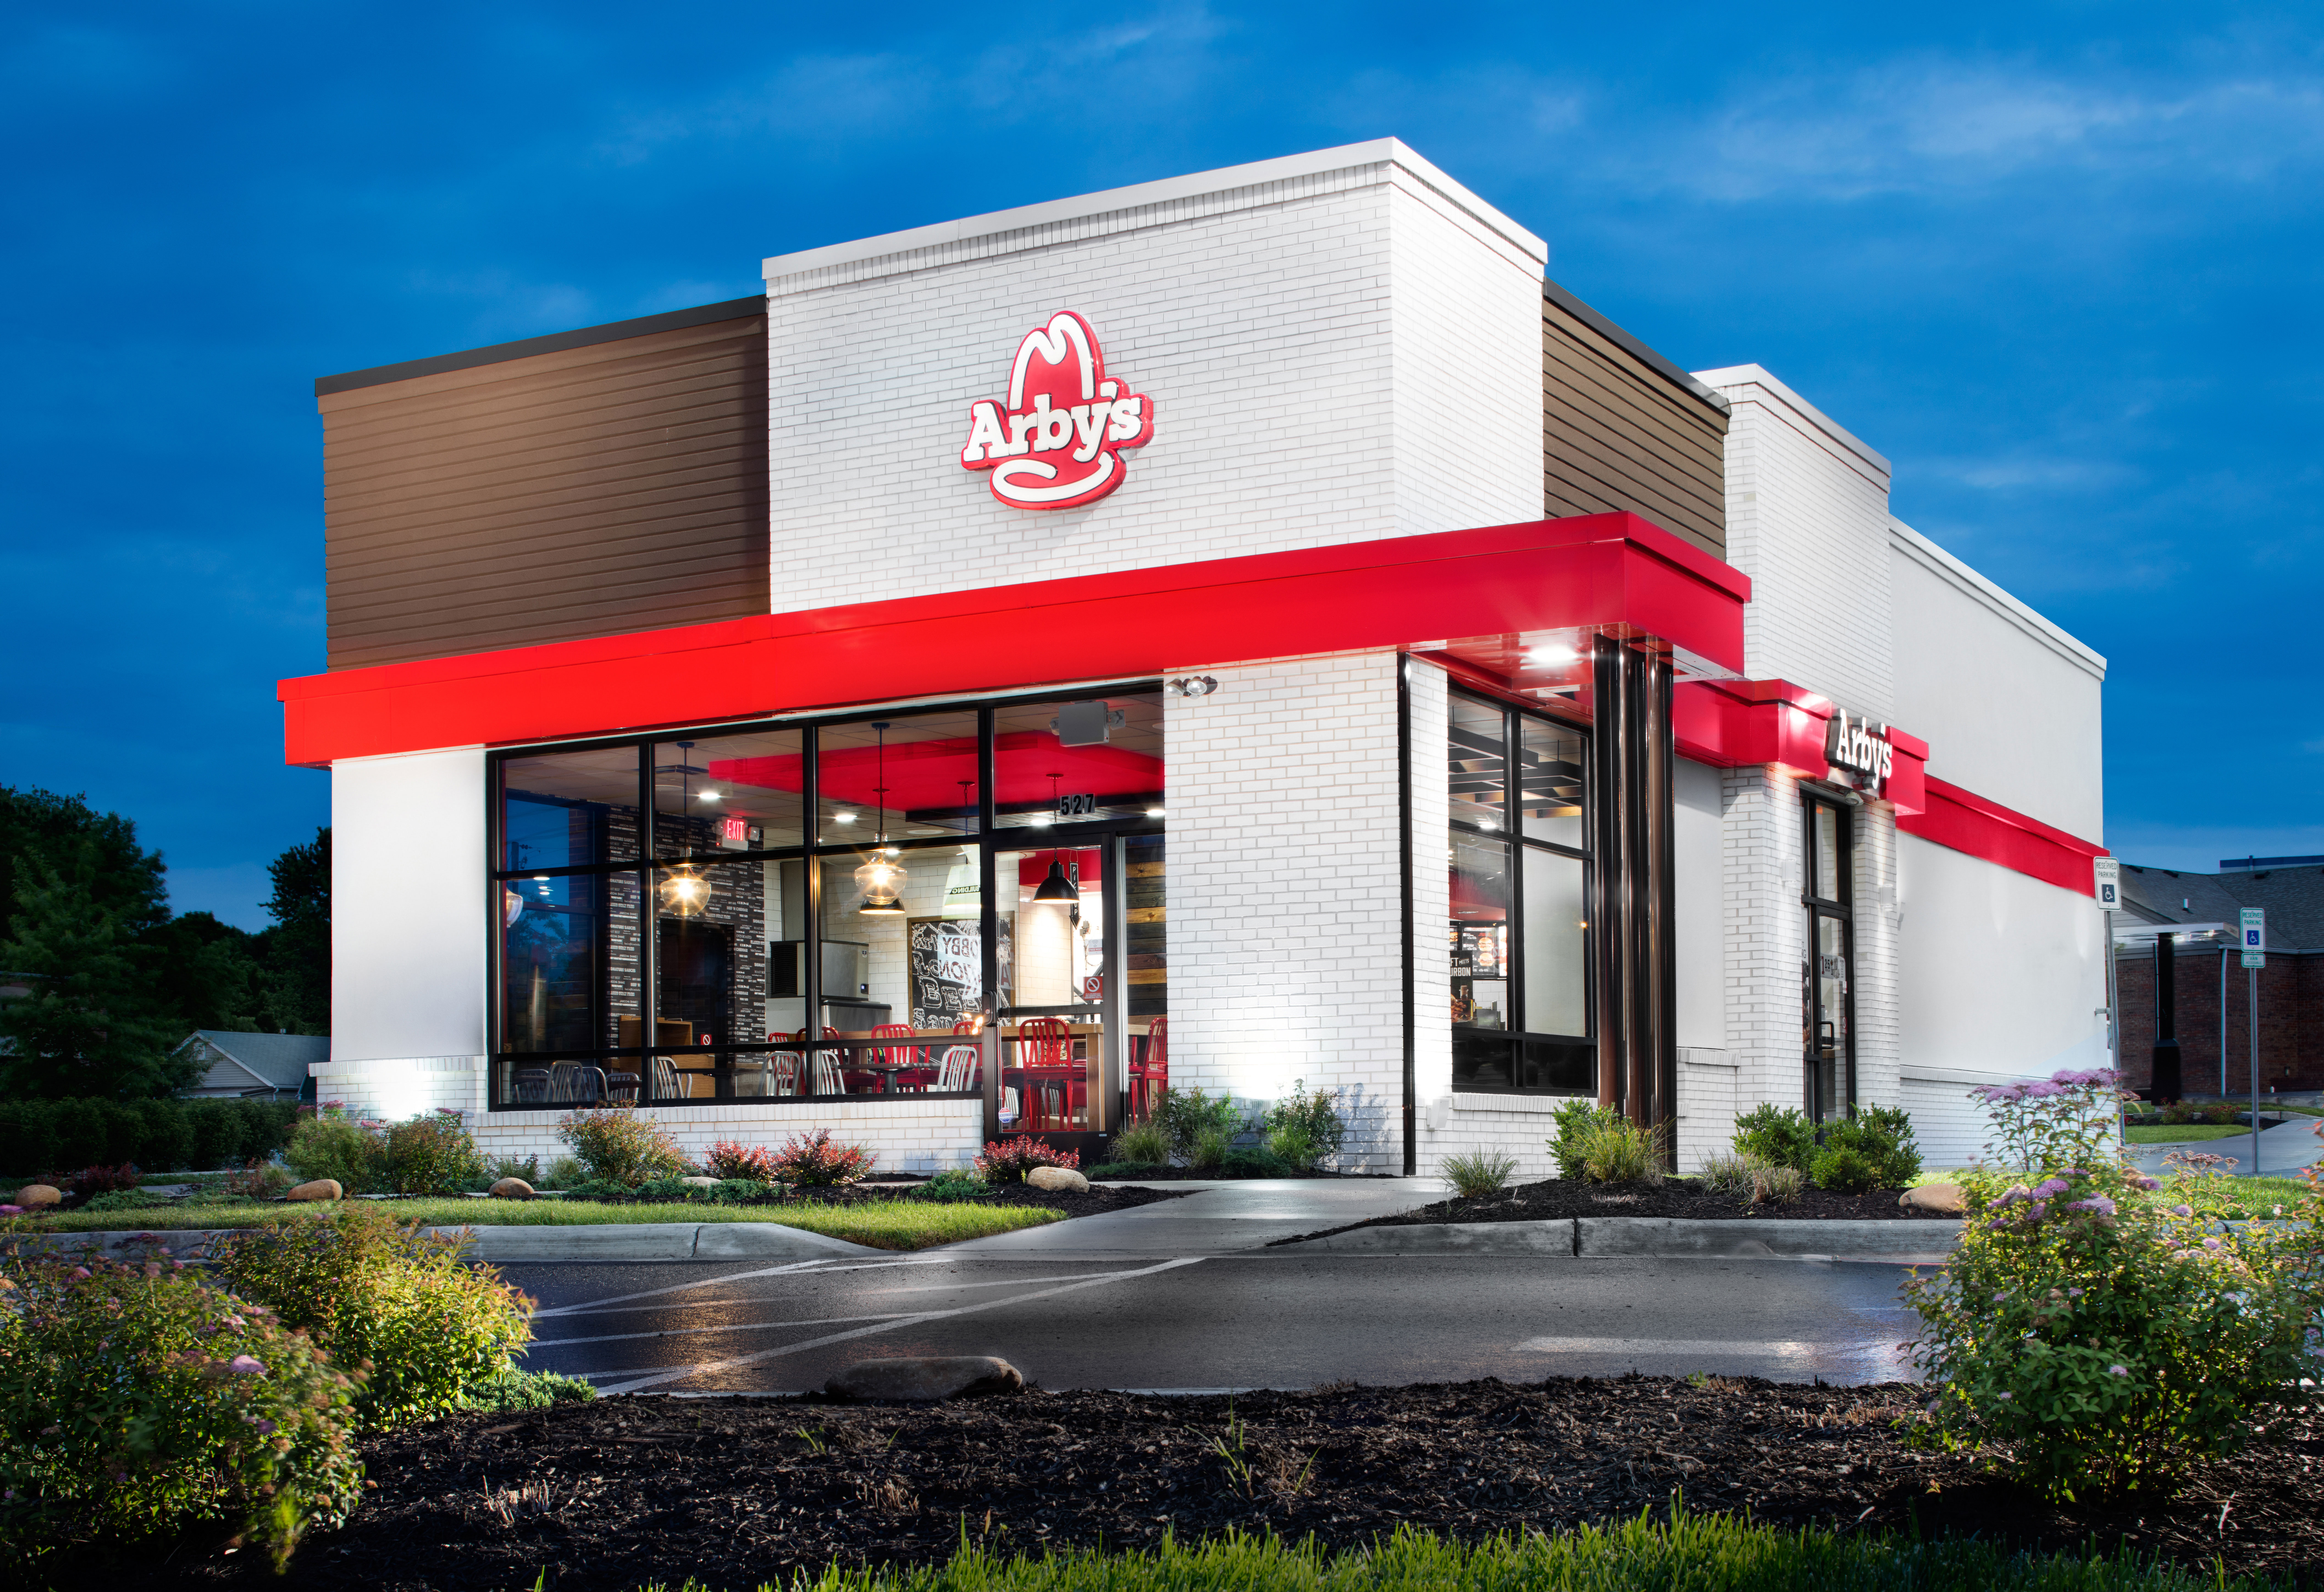 Restaurant chain Arby's reported a 3.8% increase in same-store sales for 2016 with total system-wide sales exceeding $3.6 billion. The sandwich maker's results have lately outperformed the broader restaurant industry.